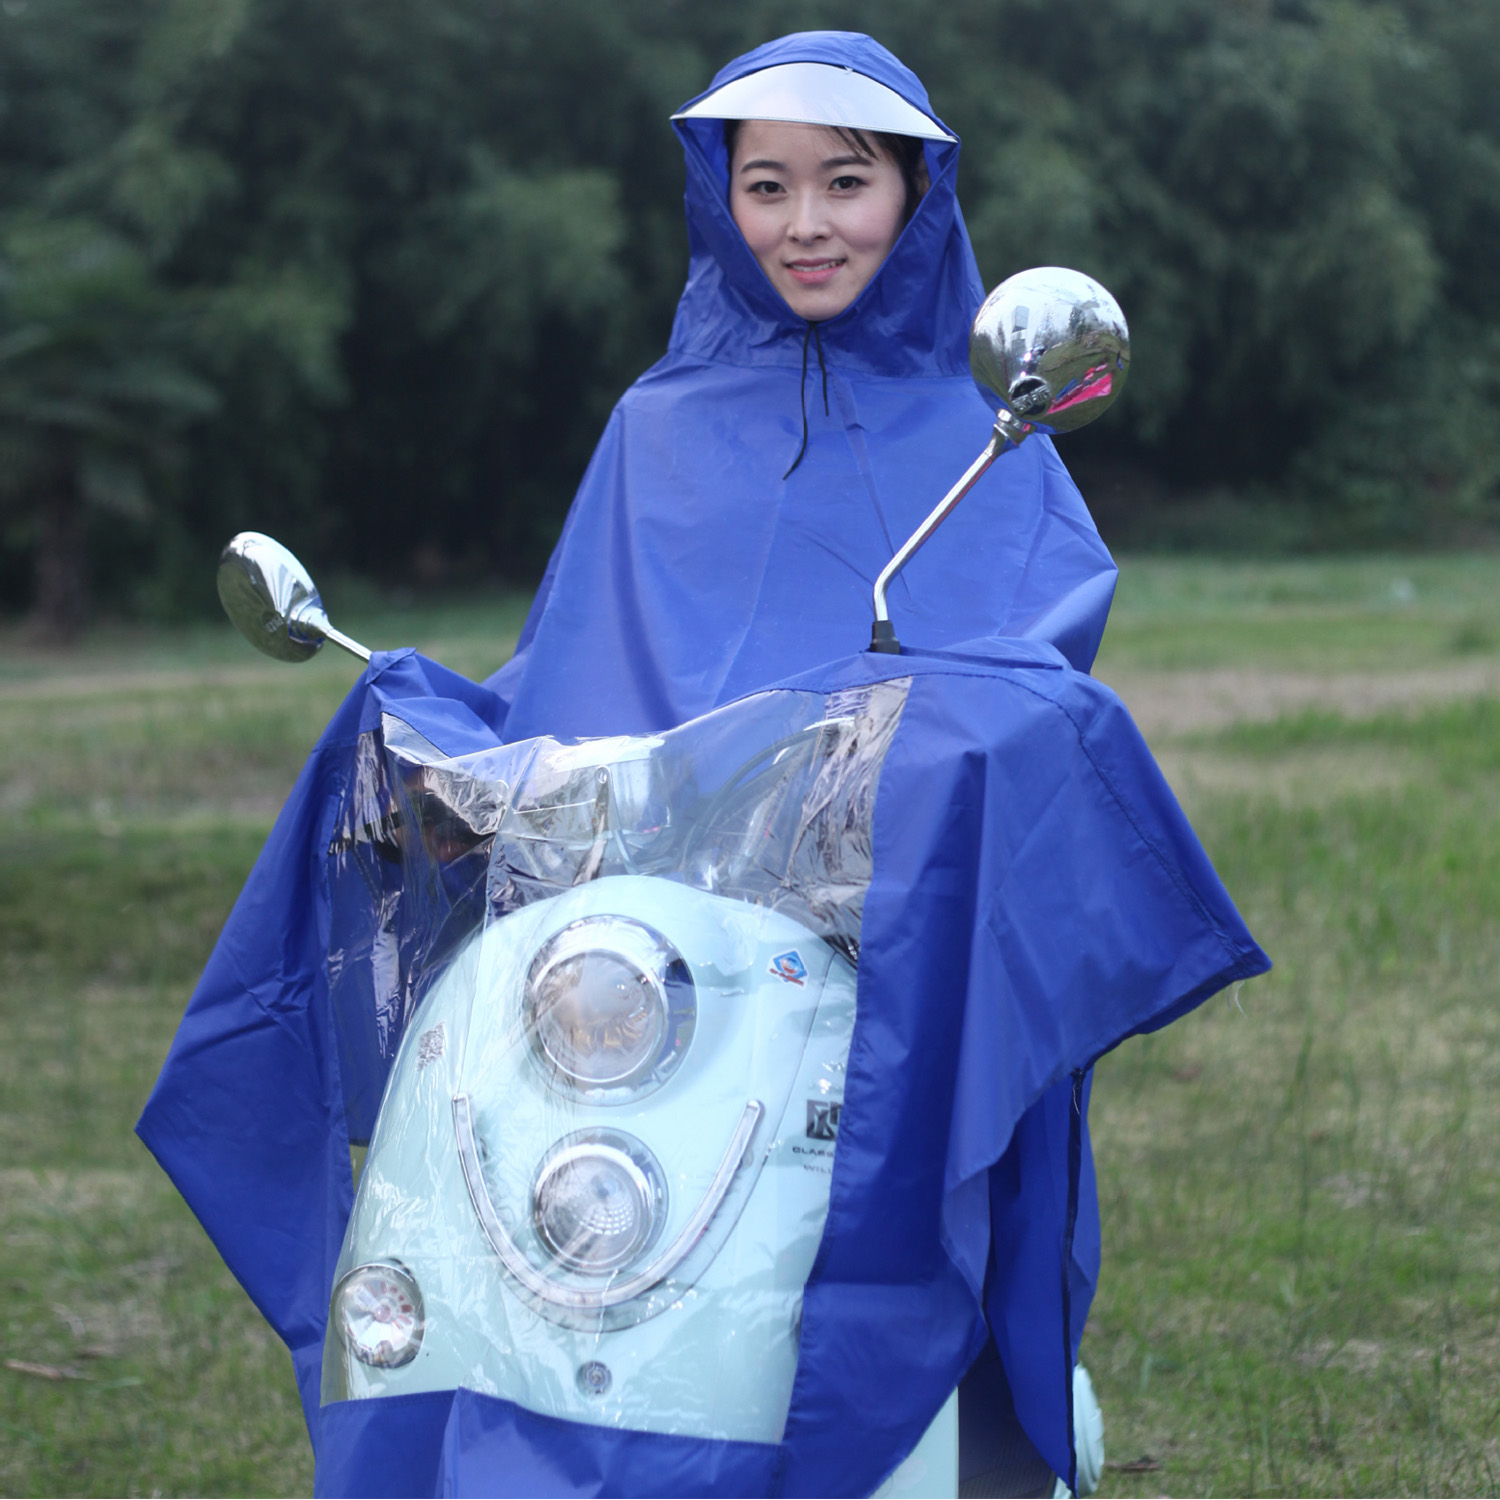 Behogar Universal Waterproof Hooded Raincoat Rain Cape Coat Poncho for Mobility Scooters Motorcycle Motorbikes Bicycle Blue